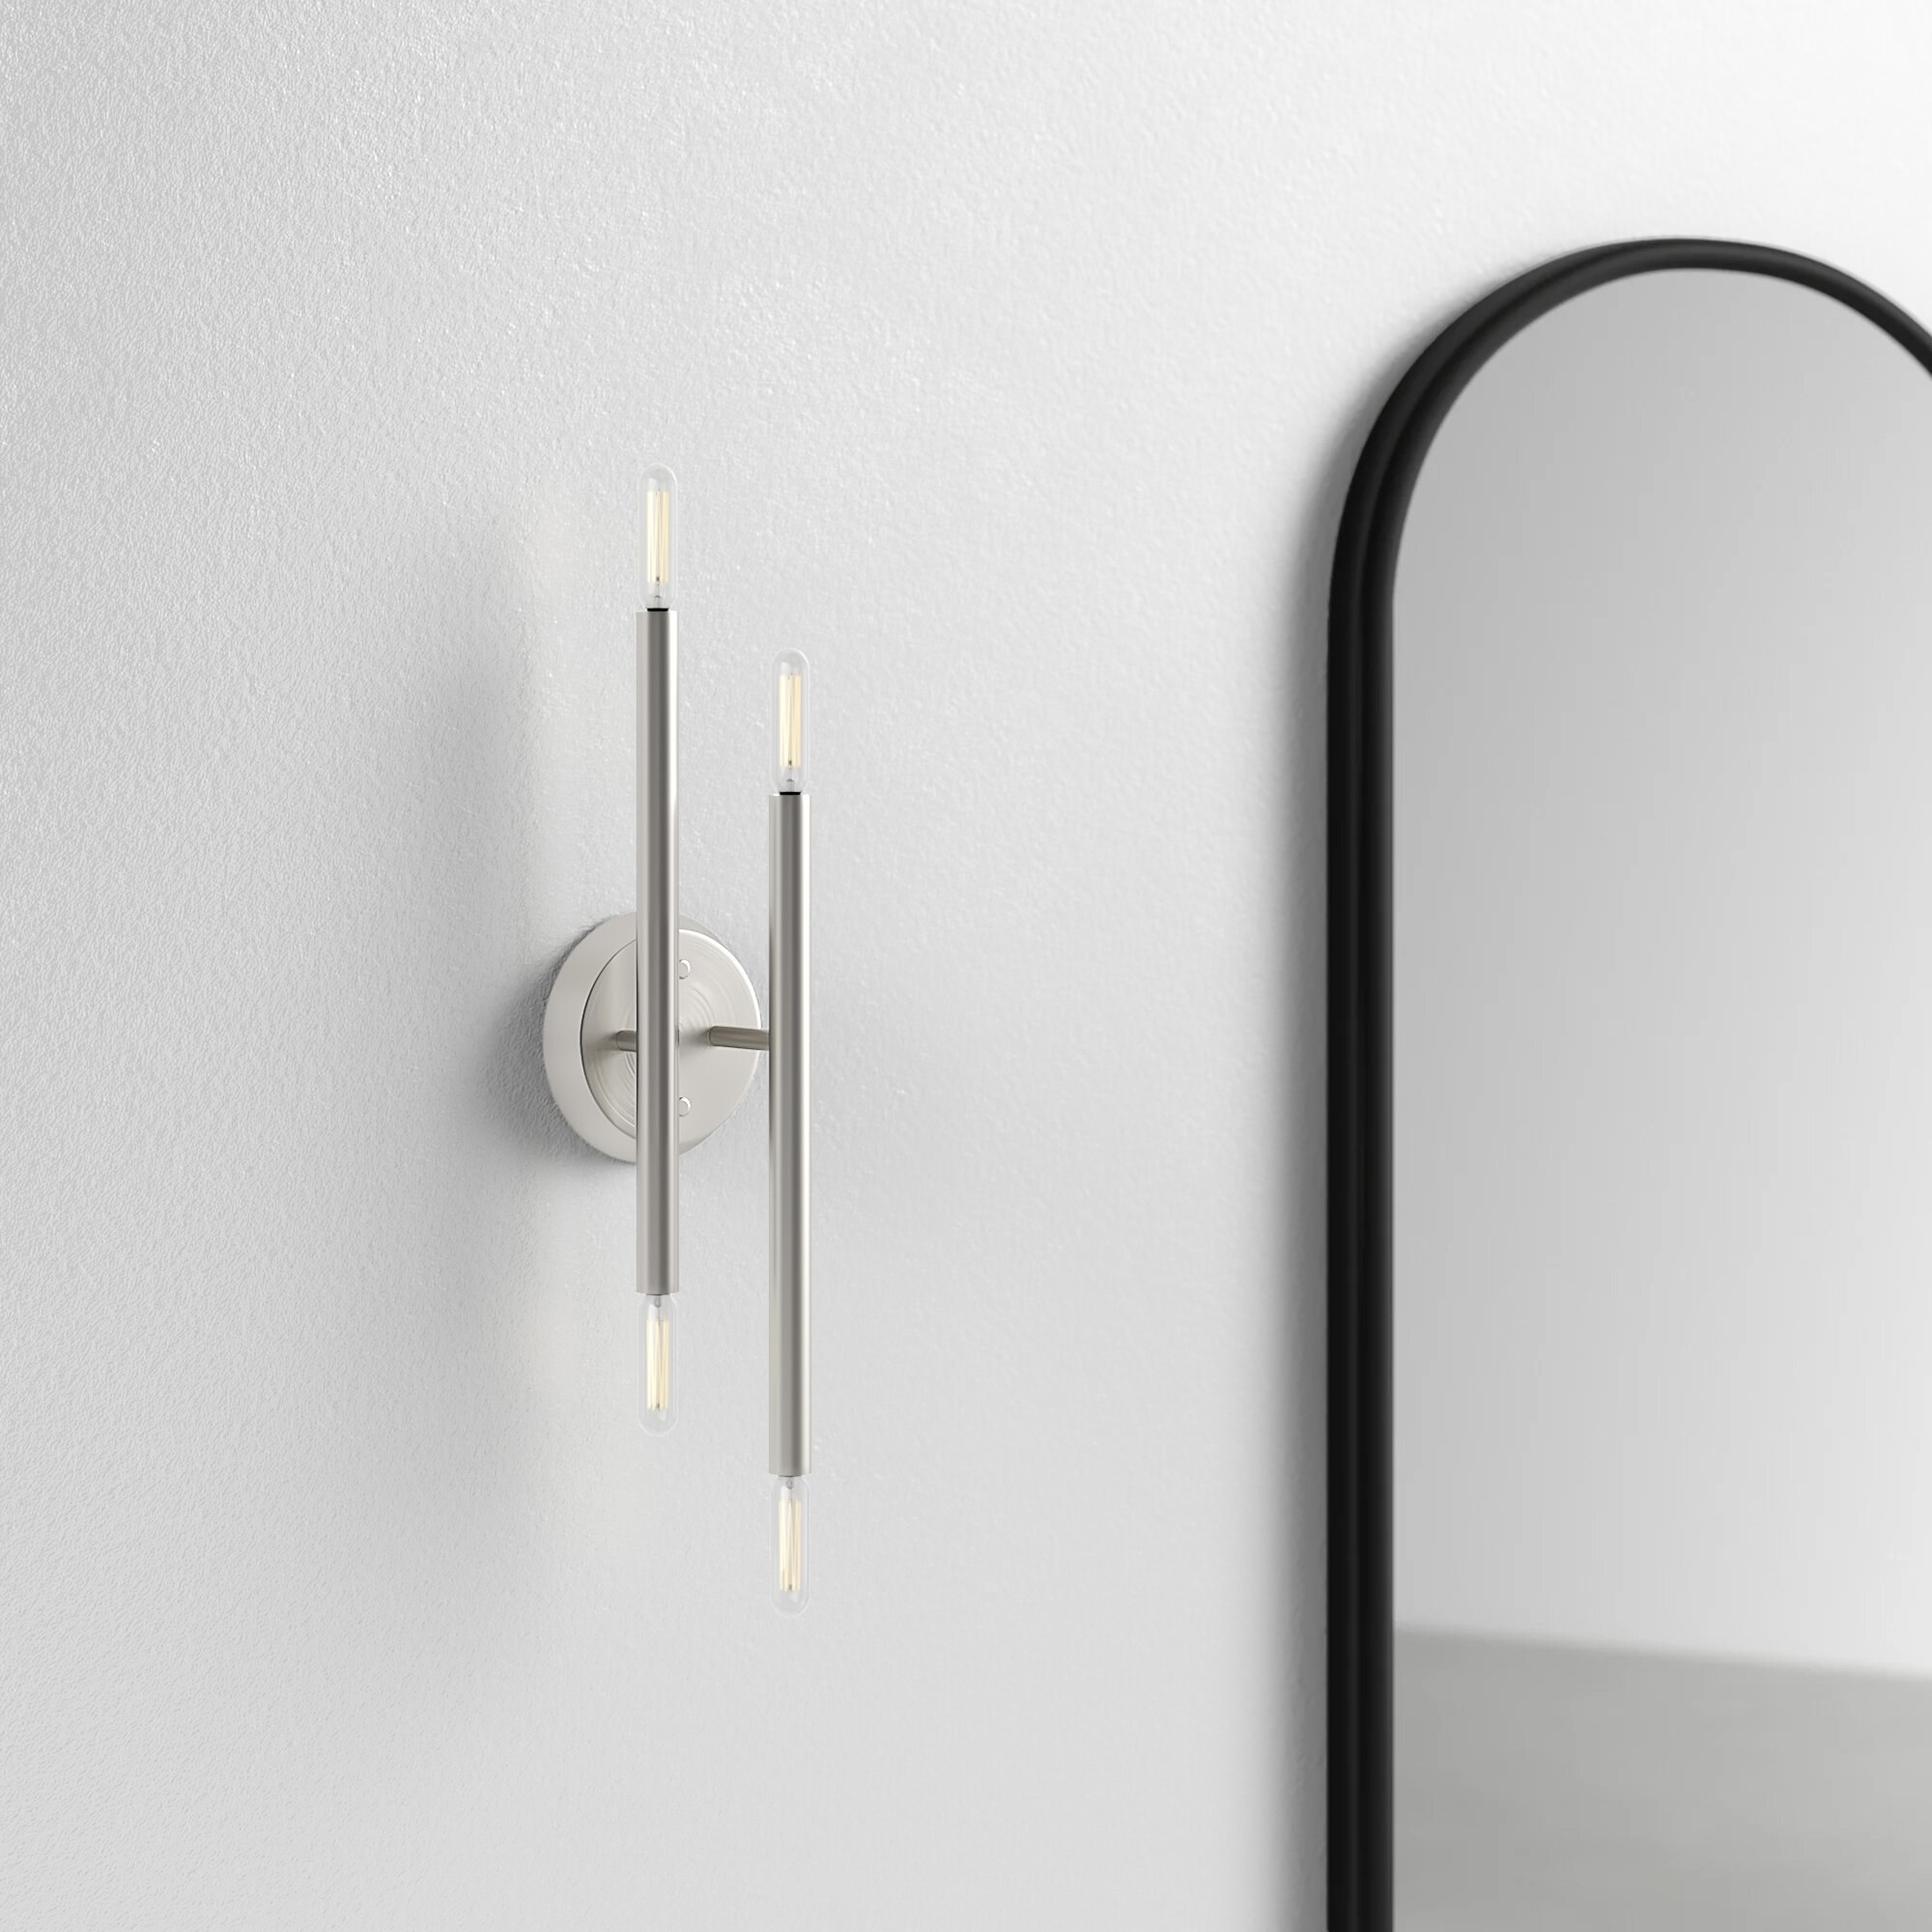 A metal wall sconce with four small lights at the end of two mismatched metal lines installed on a wall next to a mirror